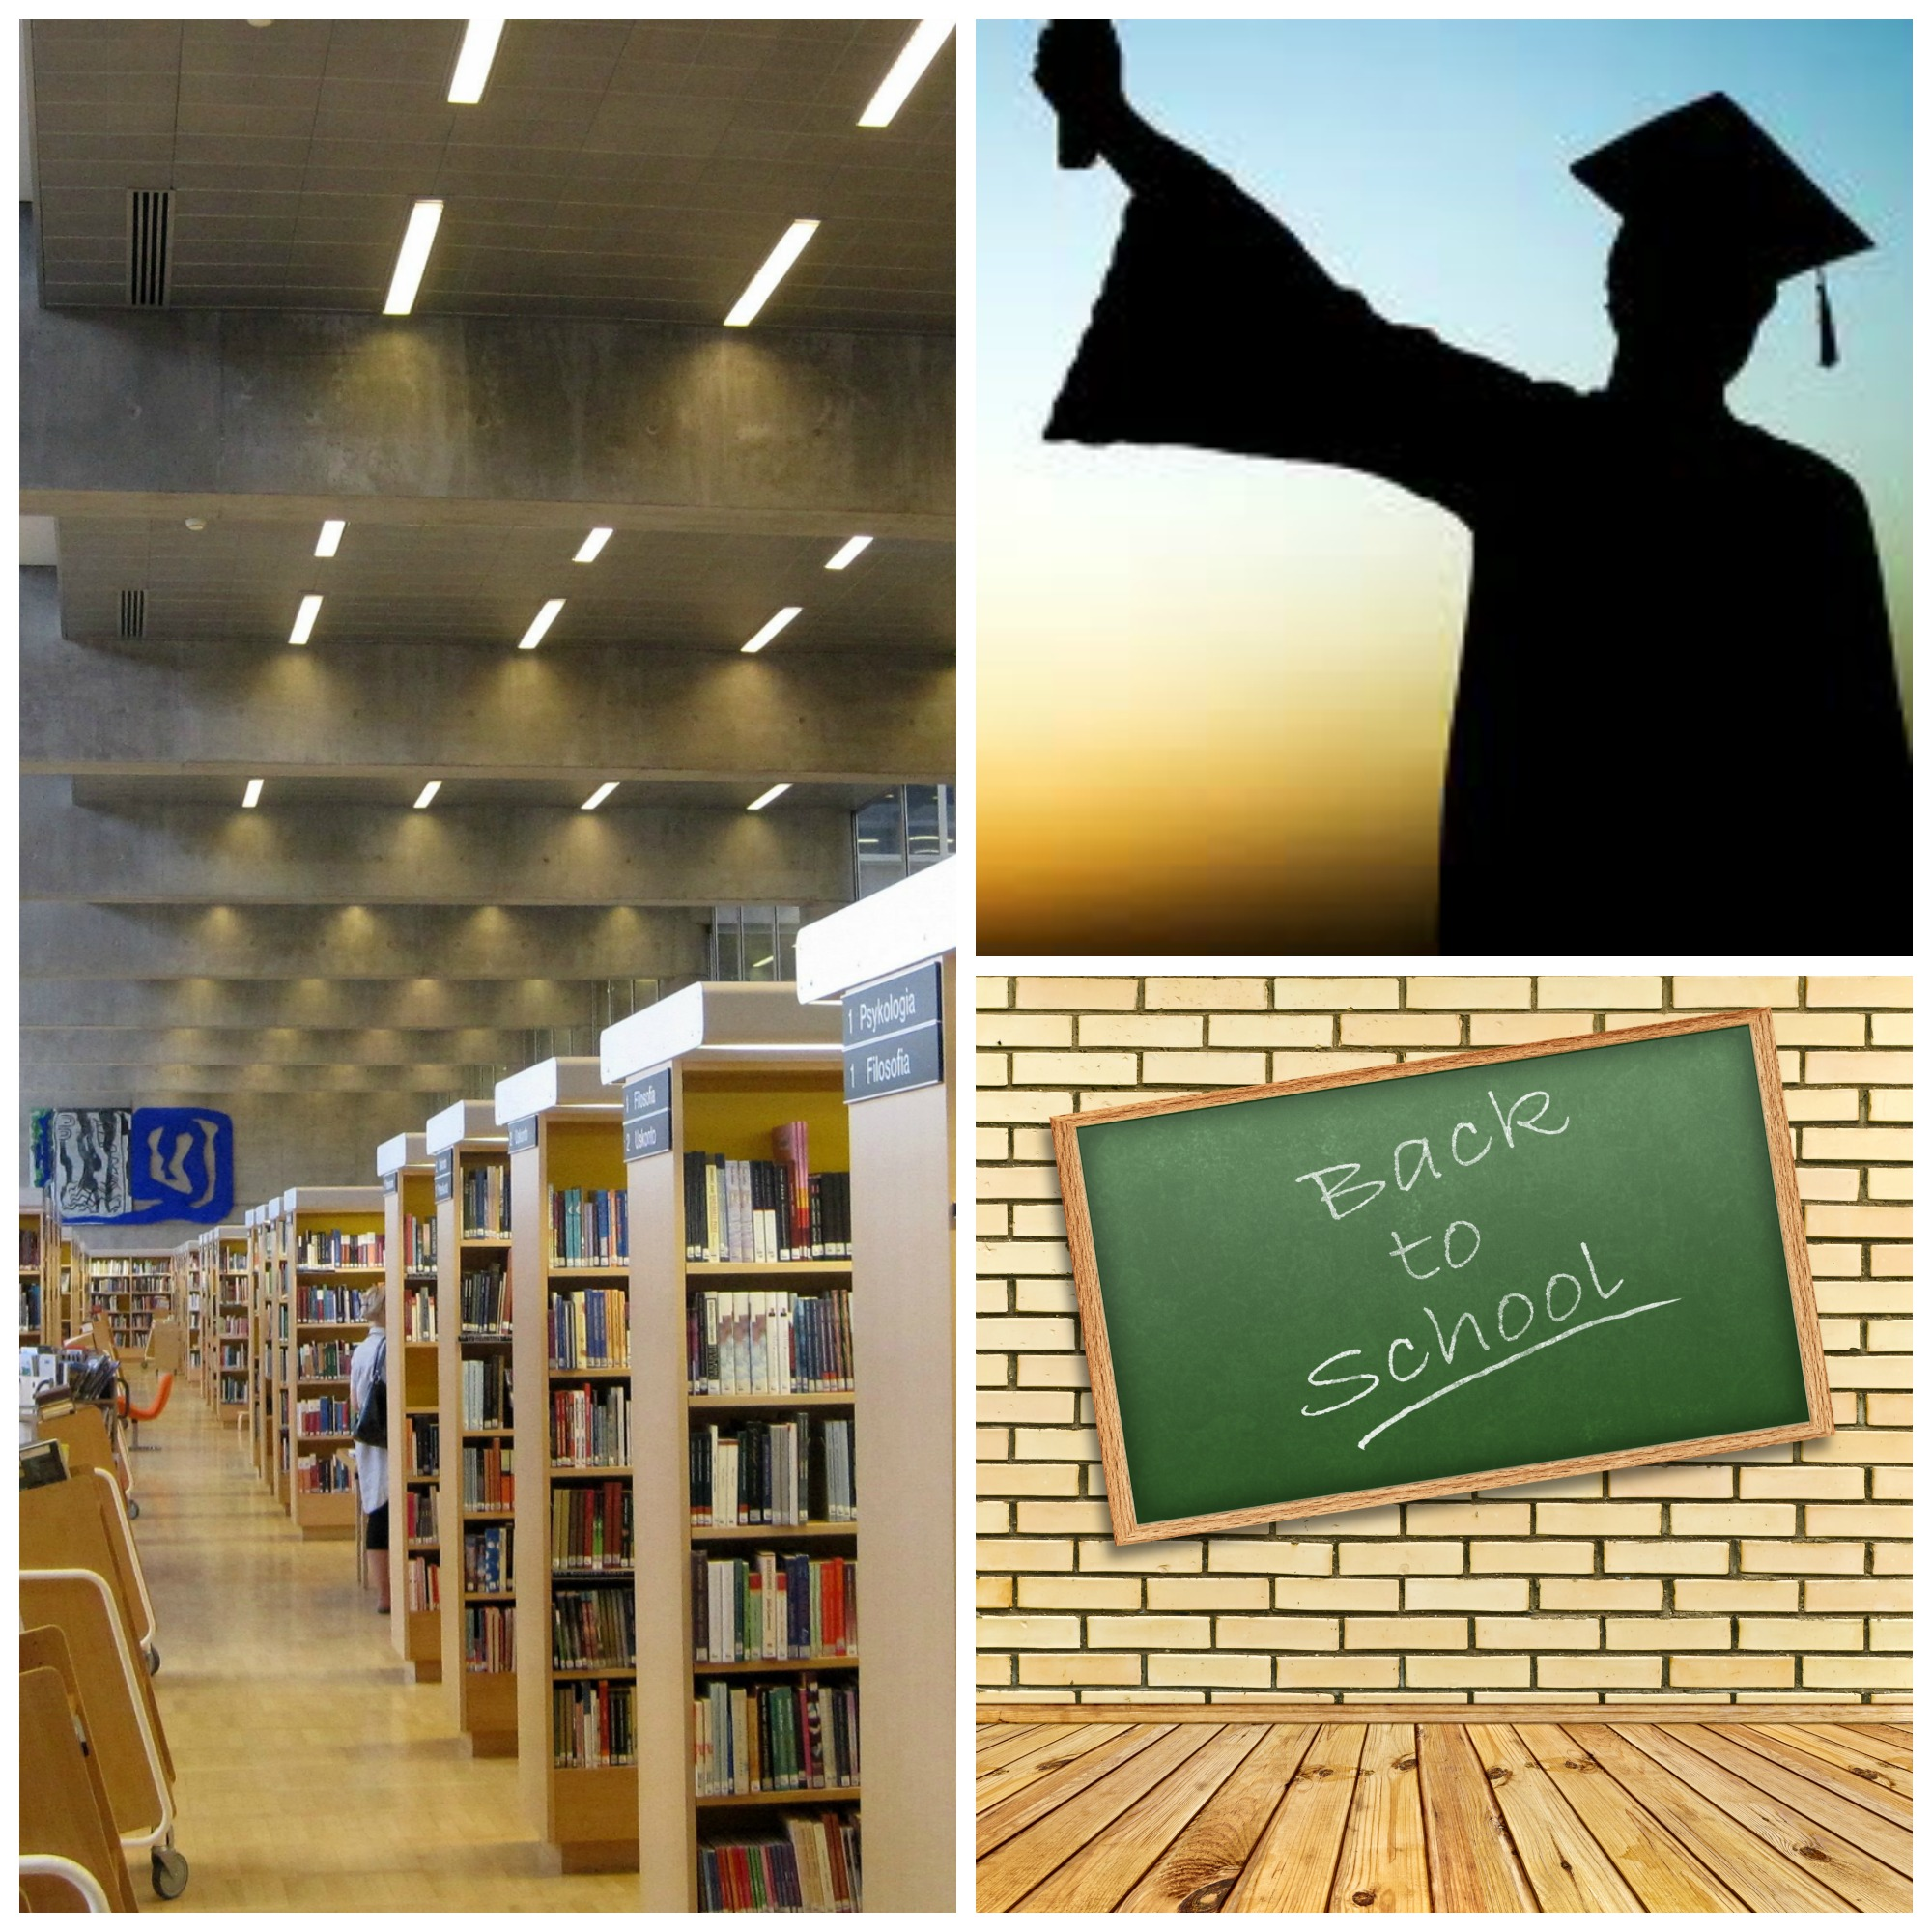 Education - scene of library shelves, blackboard saying back to school, man in shadow in graduation gown holding diploma